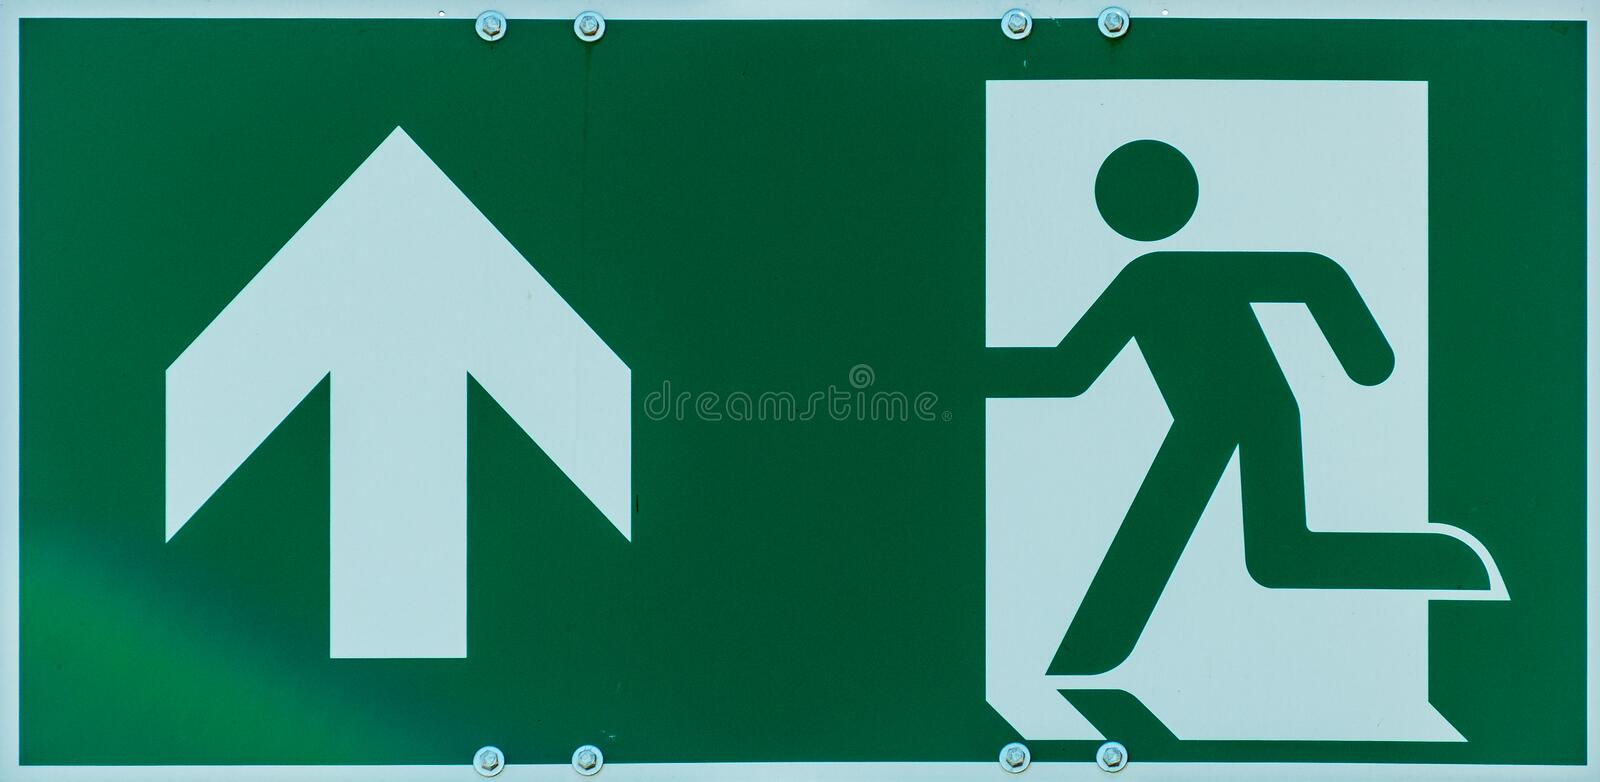 Sign with the pictogram of a walking person and an arrow in white on a green background, indication of an escape route in case of stock photography